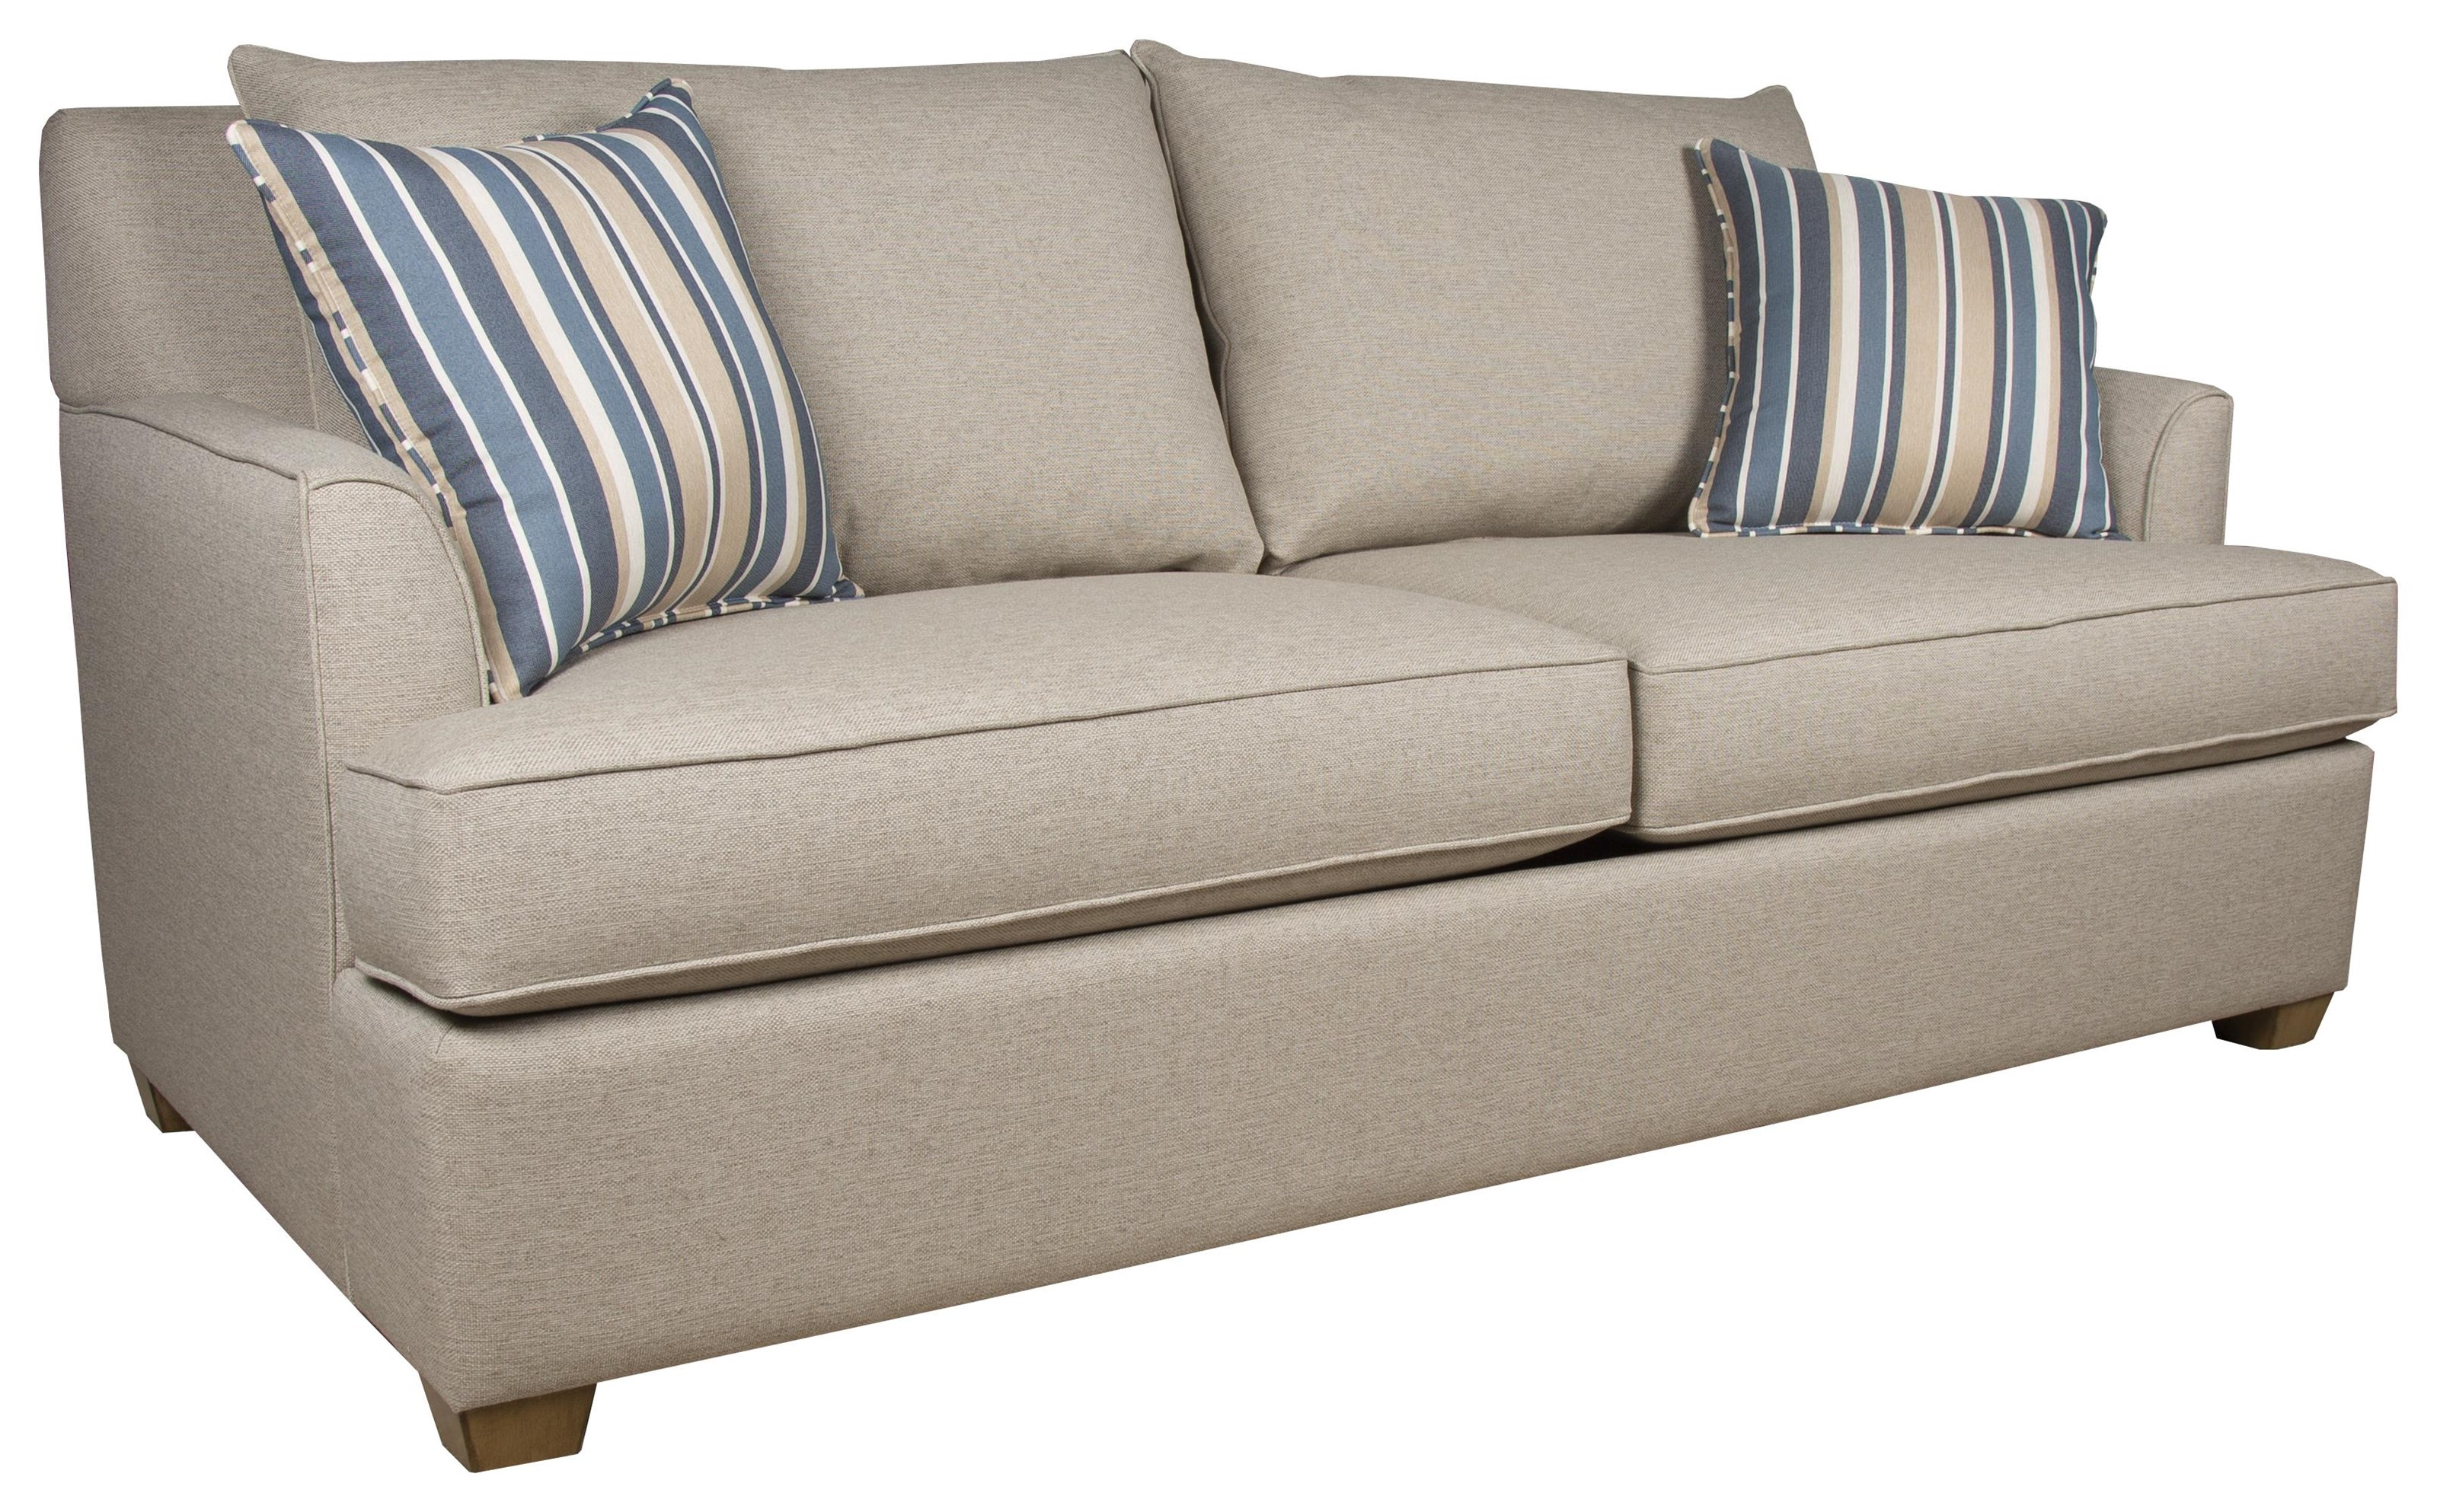 210 Sofa Collection Queen Sleeper Sofa by Capris Furniture at Baer's Furniture